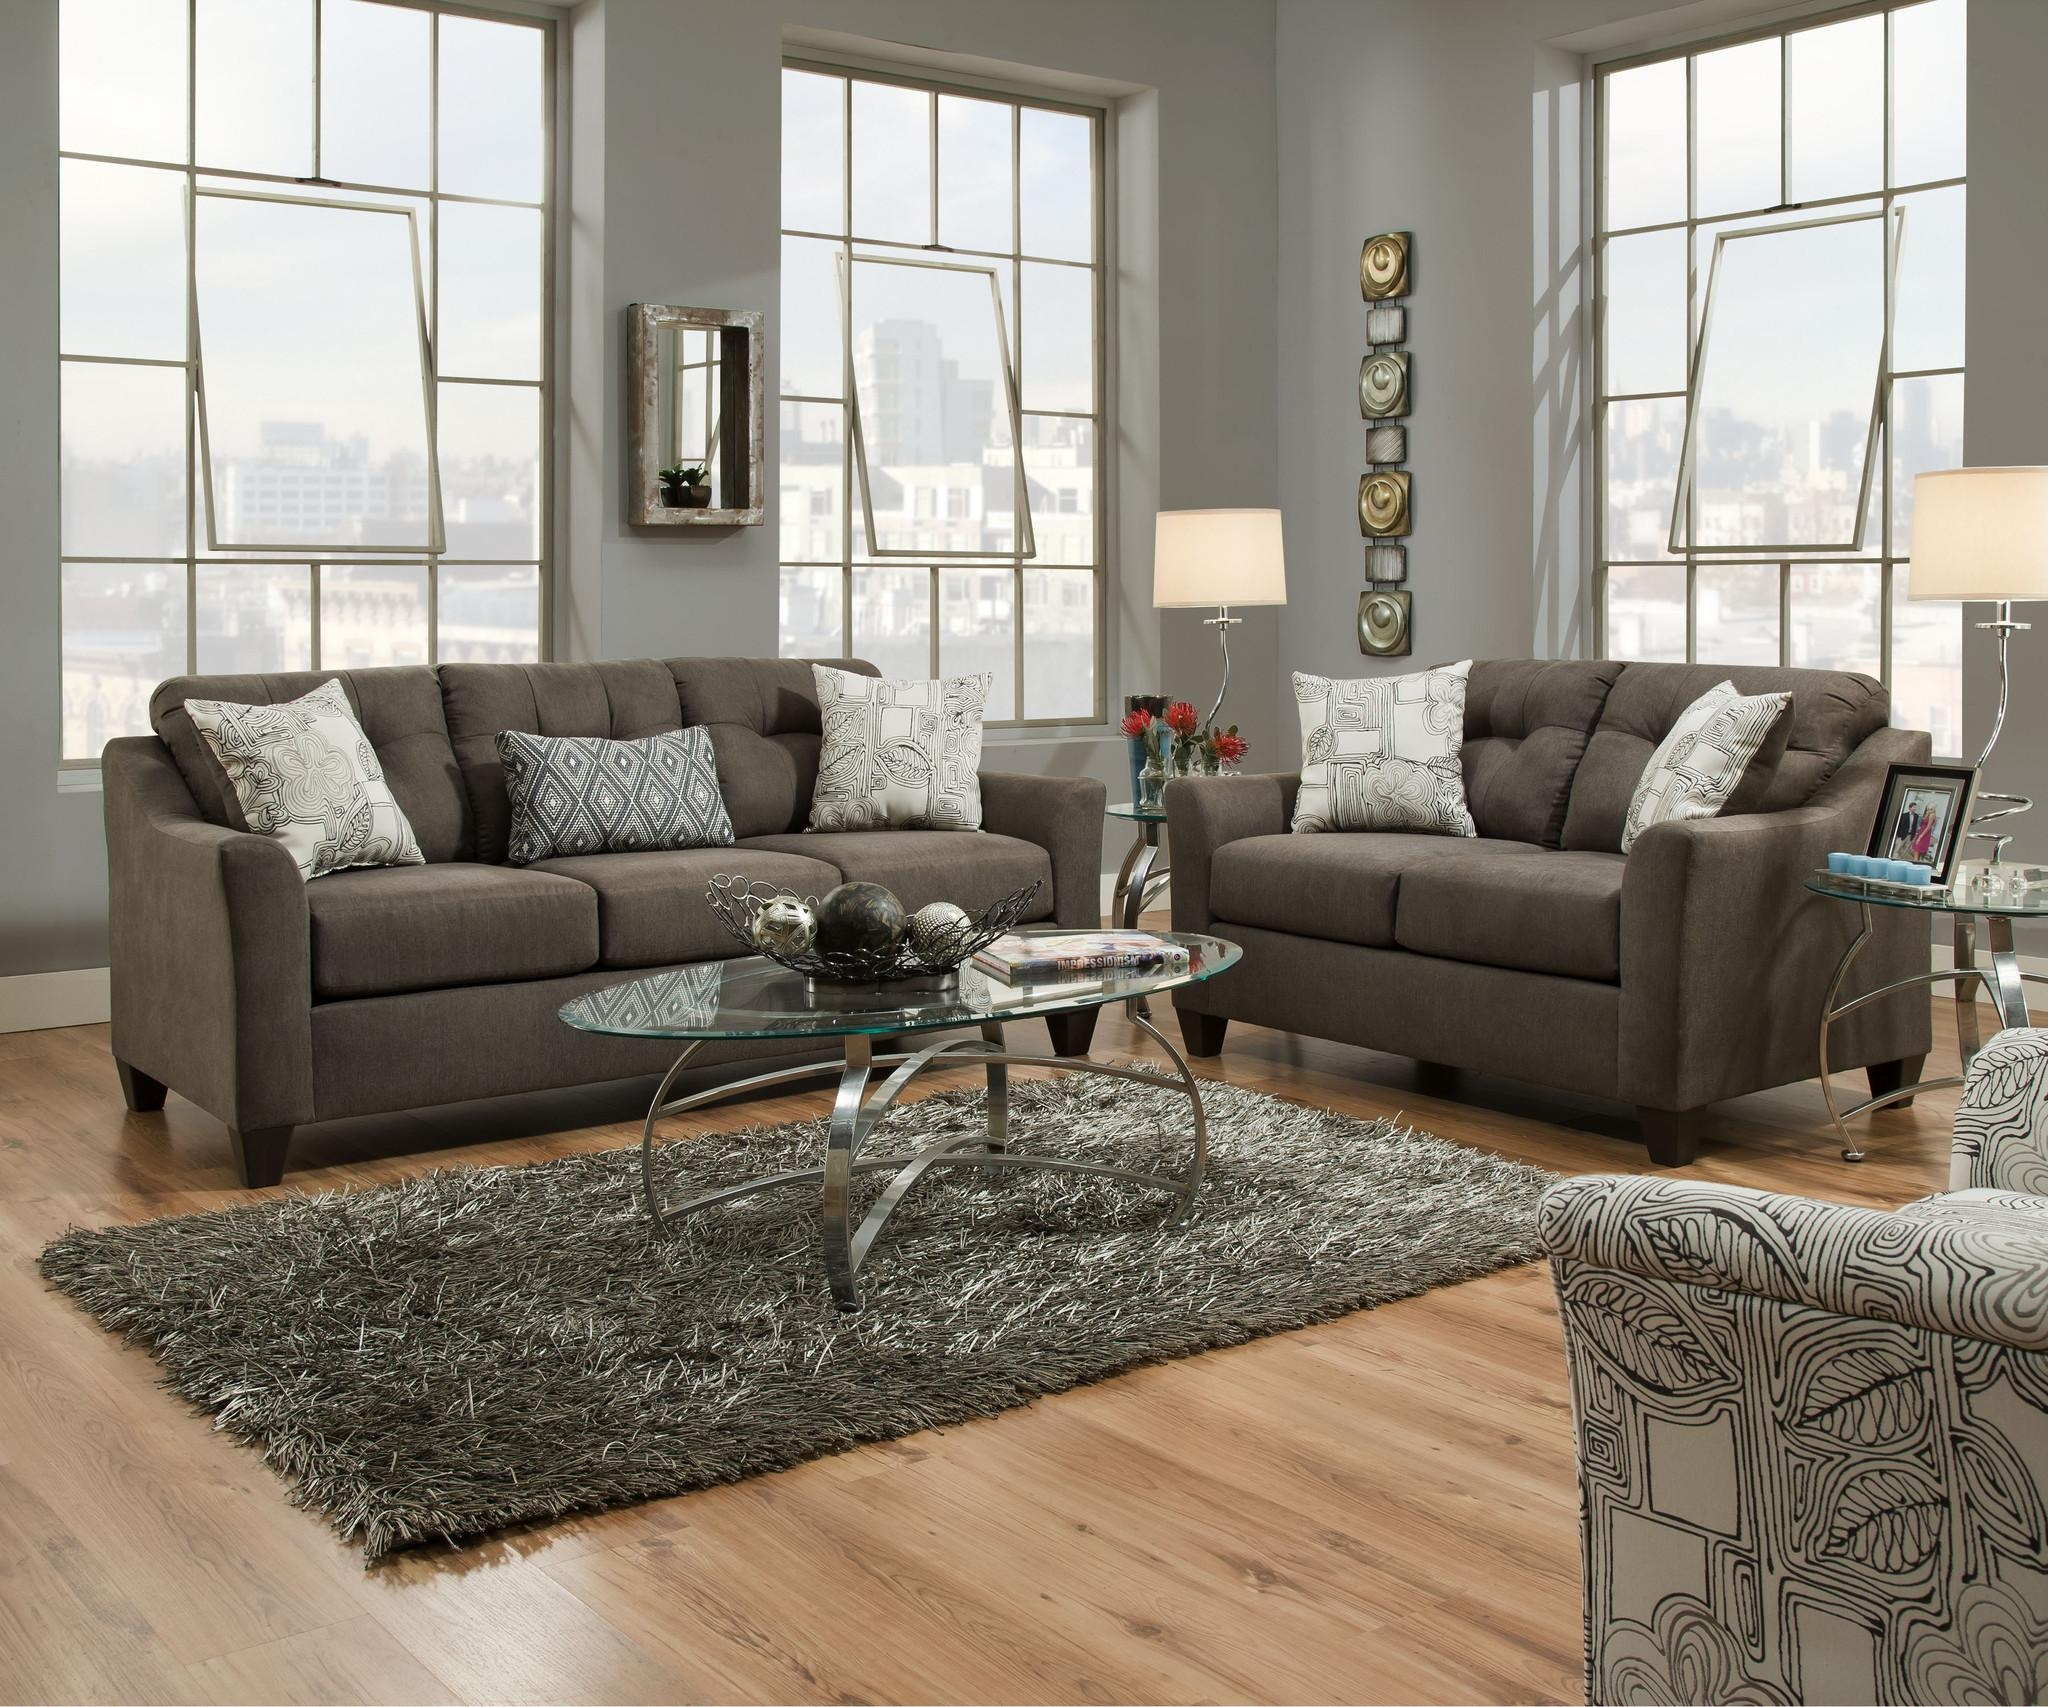 20 Collection of Simmons Sofas and Loveseats